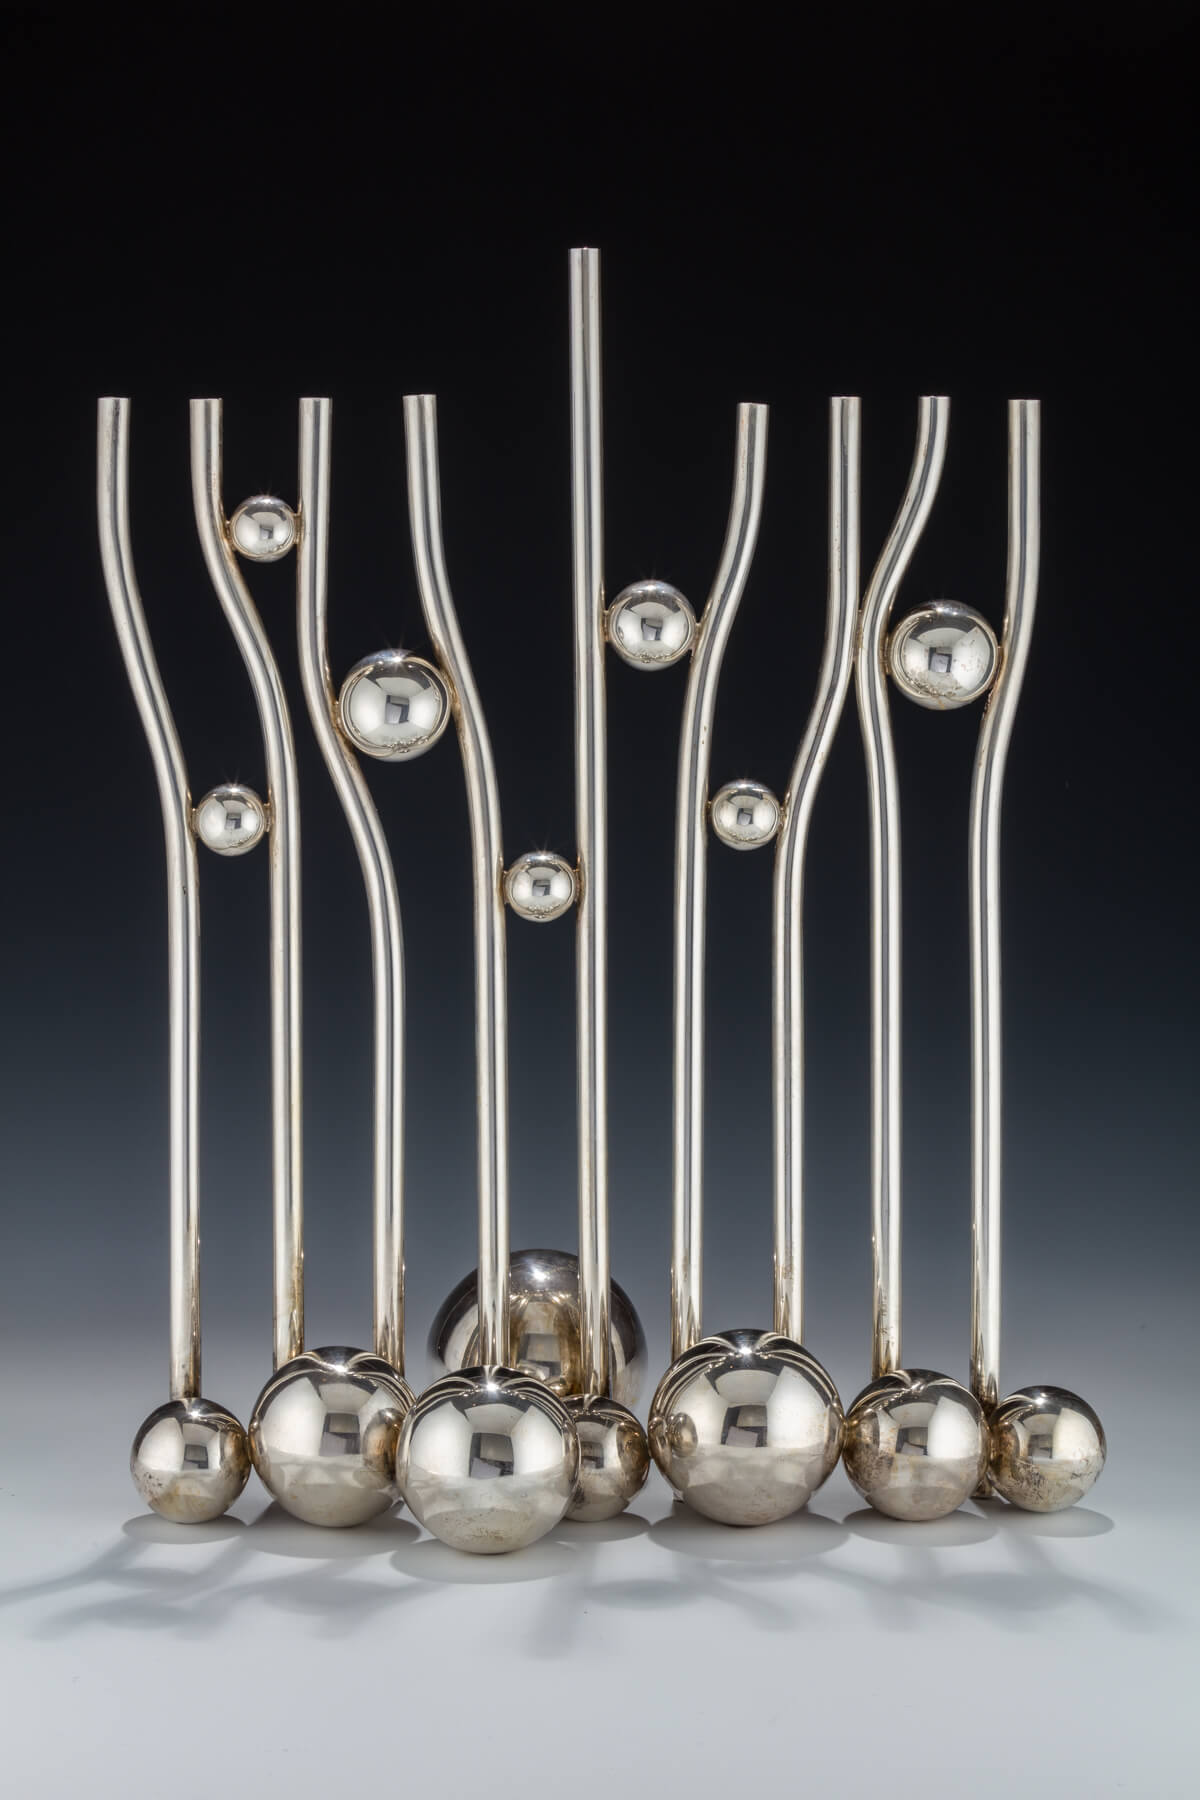 119. Sterling Silver Chanukah Menorah by Arie Ofir